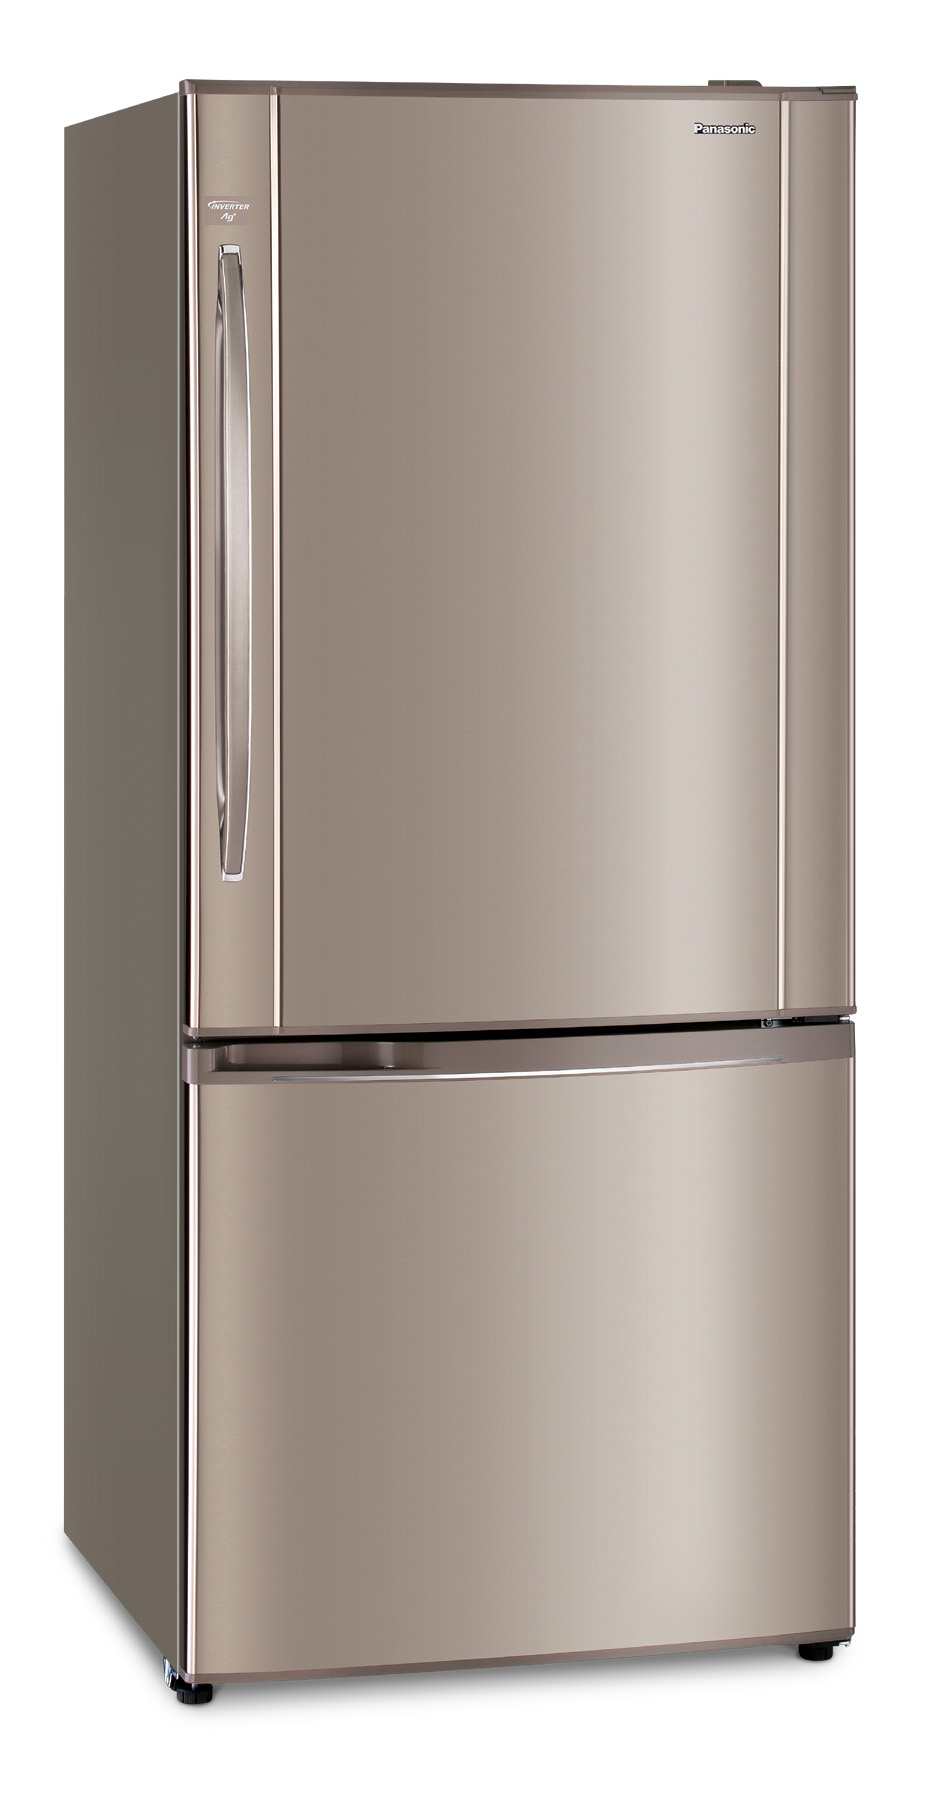 Panasonic Bottom Freezer Refrigerator India What Is A